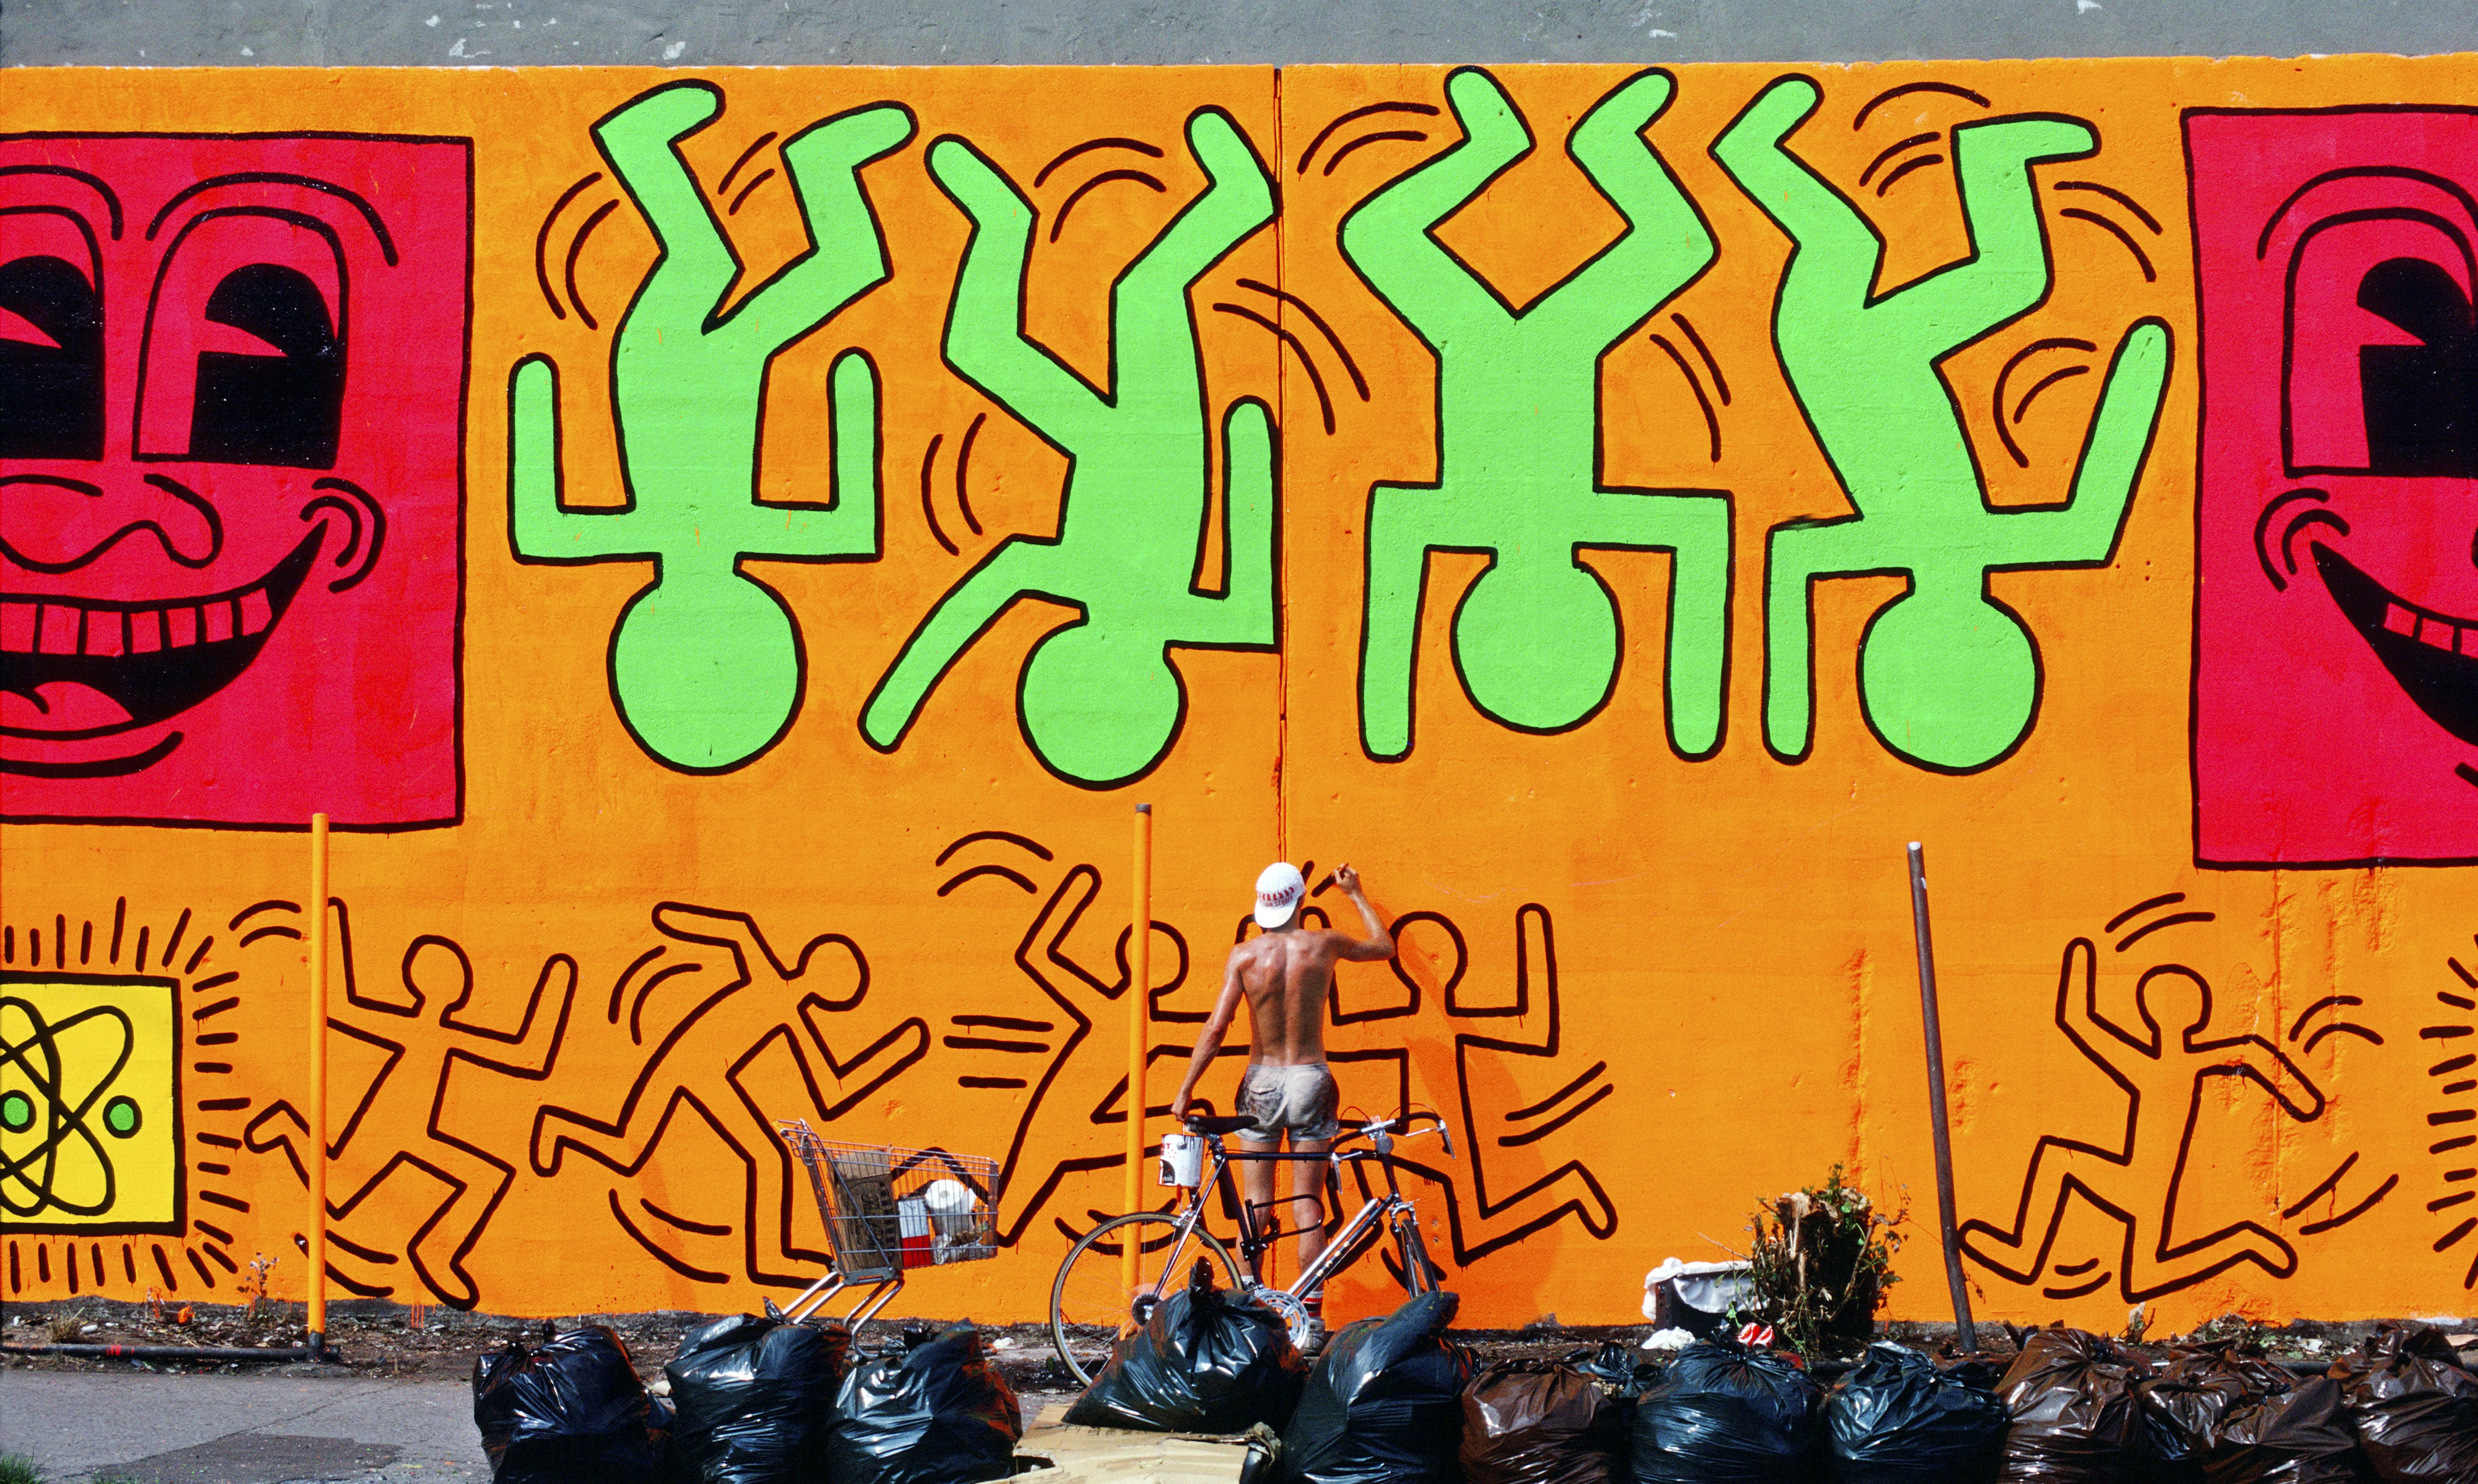 Keith Haring Painting the Houston/ Bowery Wall, Lower East Side, N.Y. (1982).